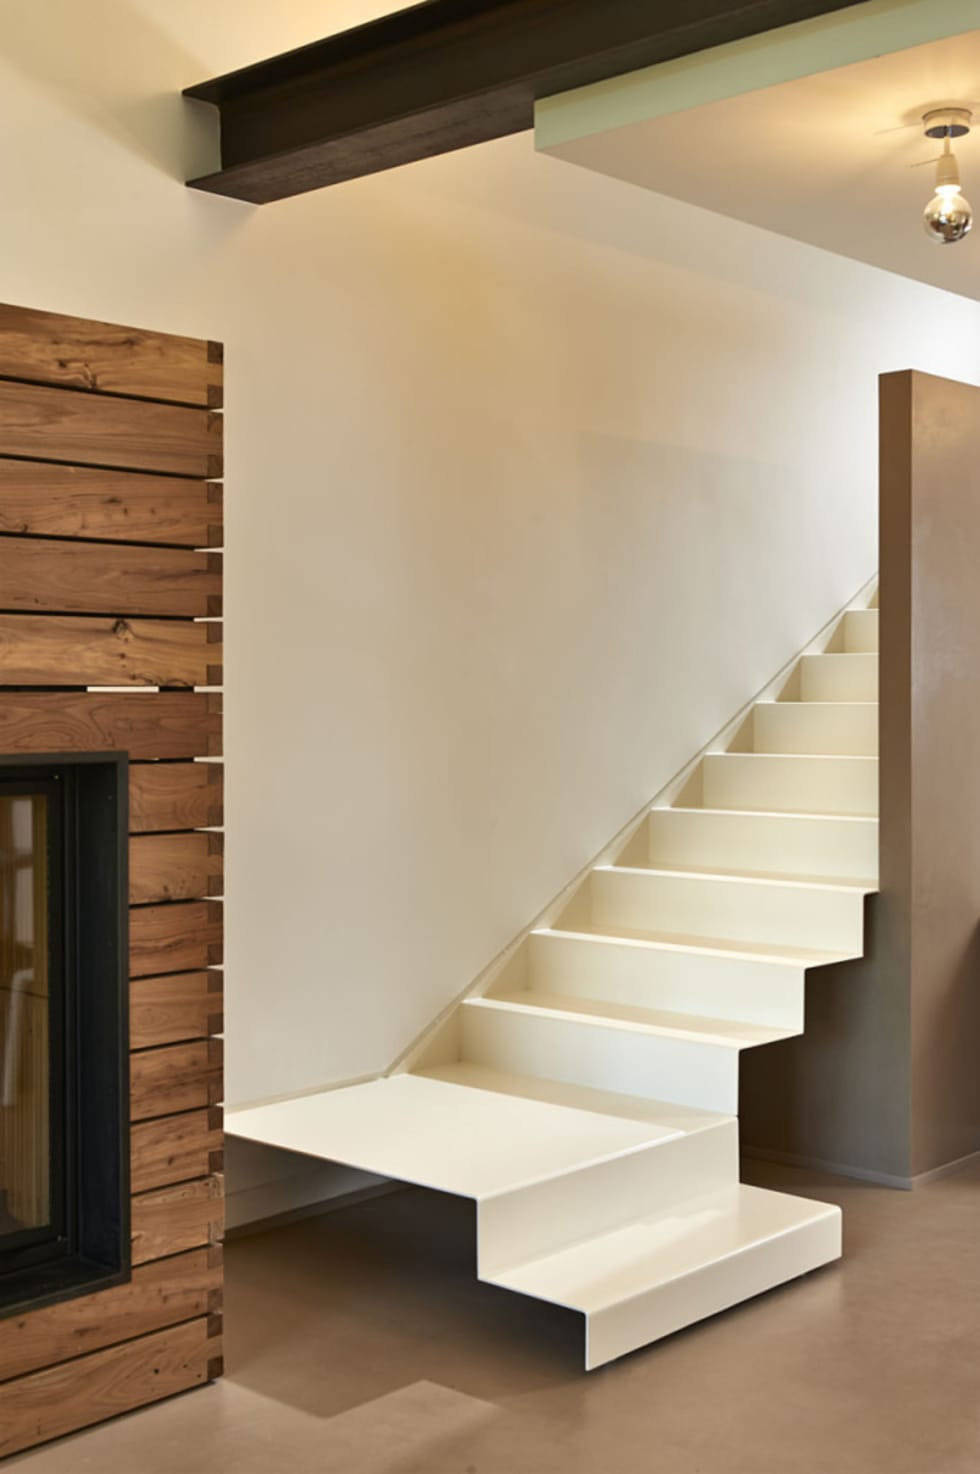 Interior design ideas inspiration pictures homify - Como se hacen escaleras de madera ...